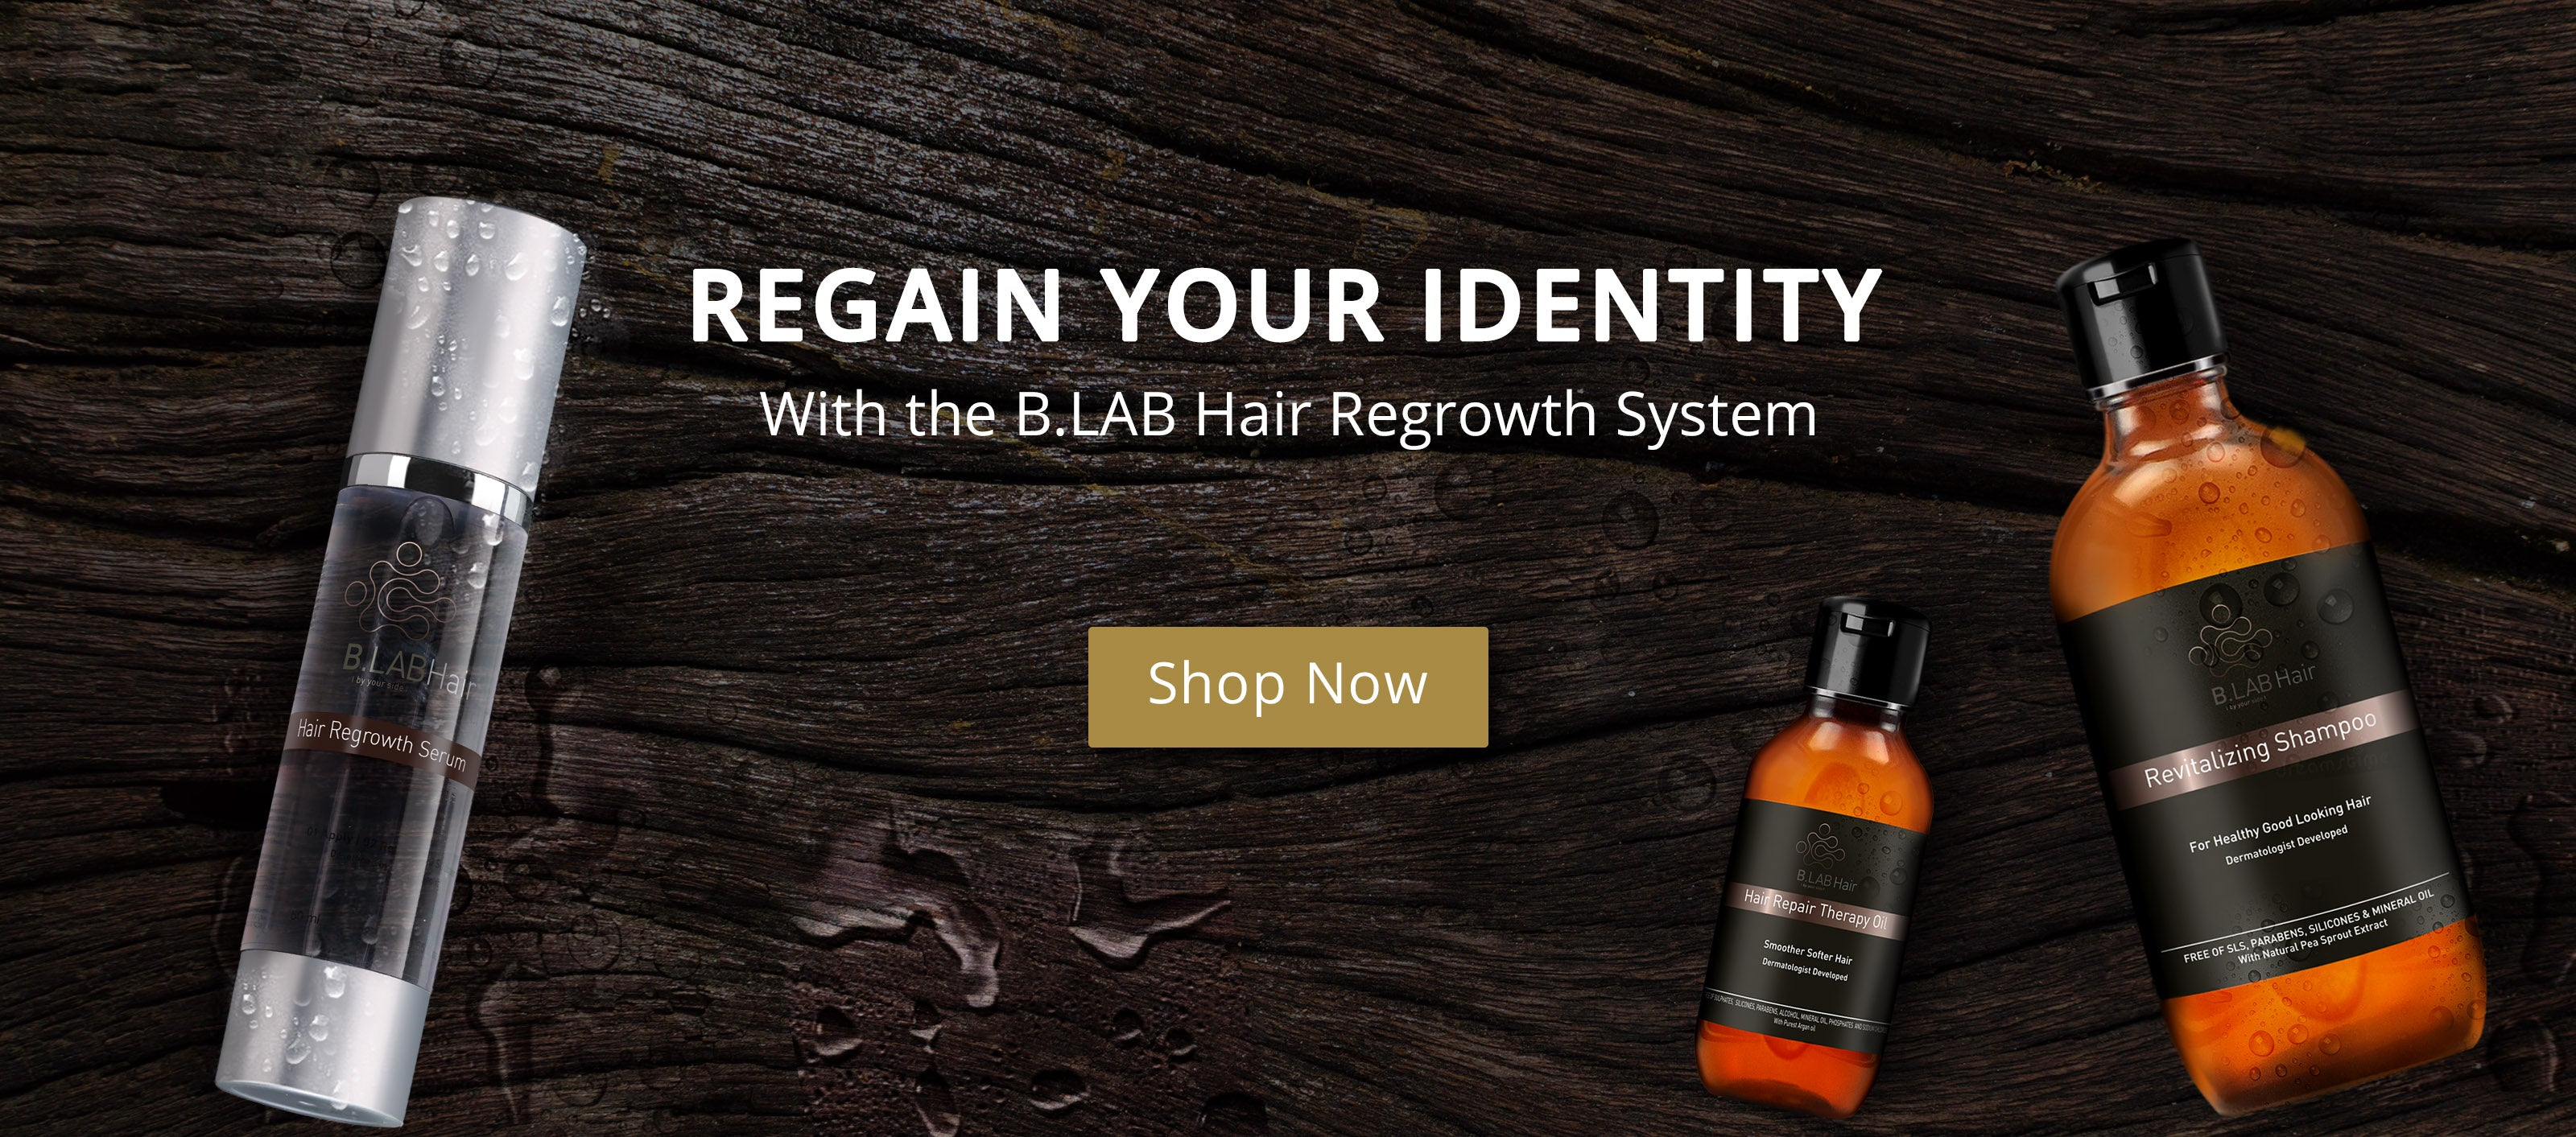 Hair Regrowth offer